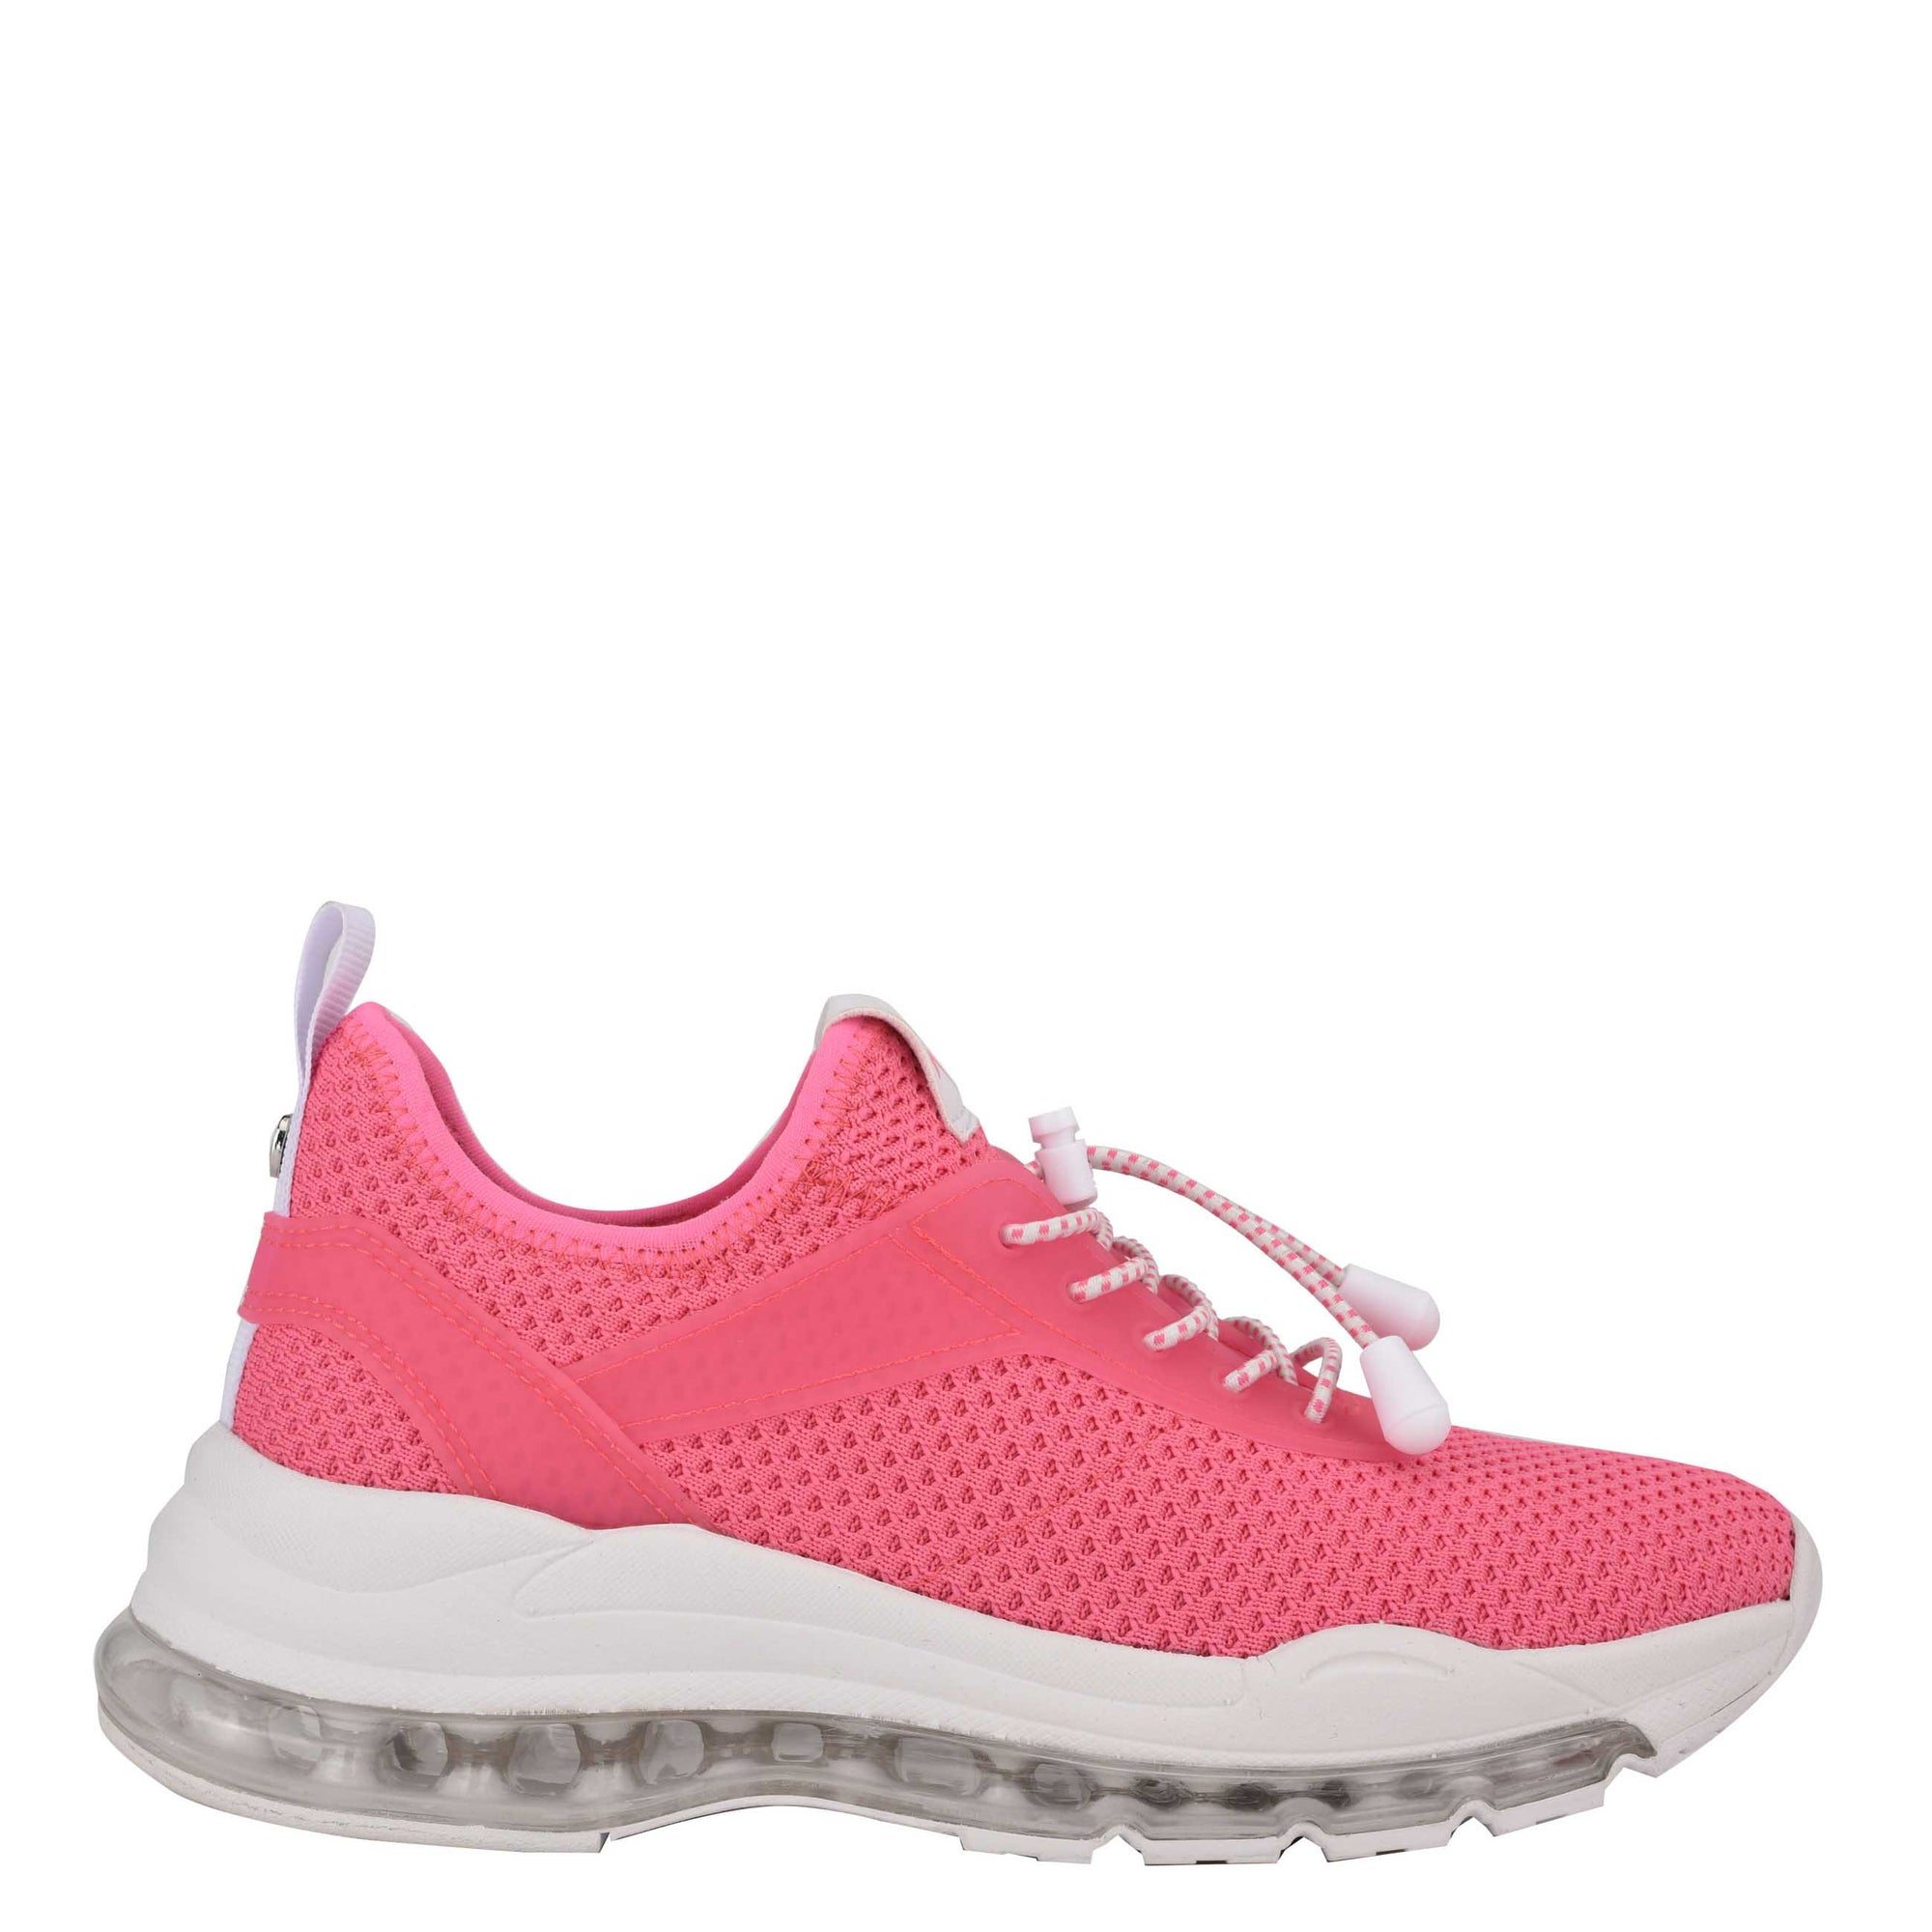 Catchme Sneakers